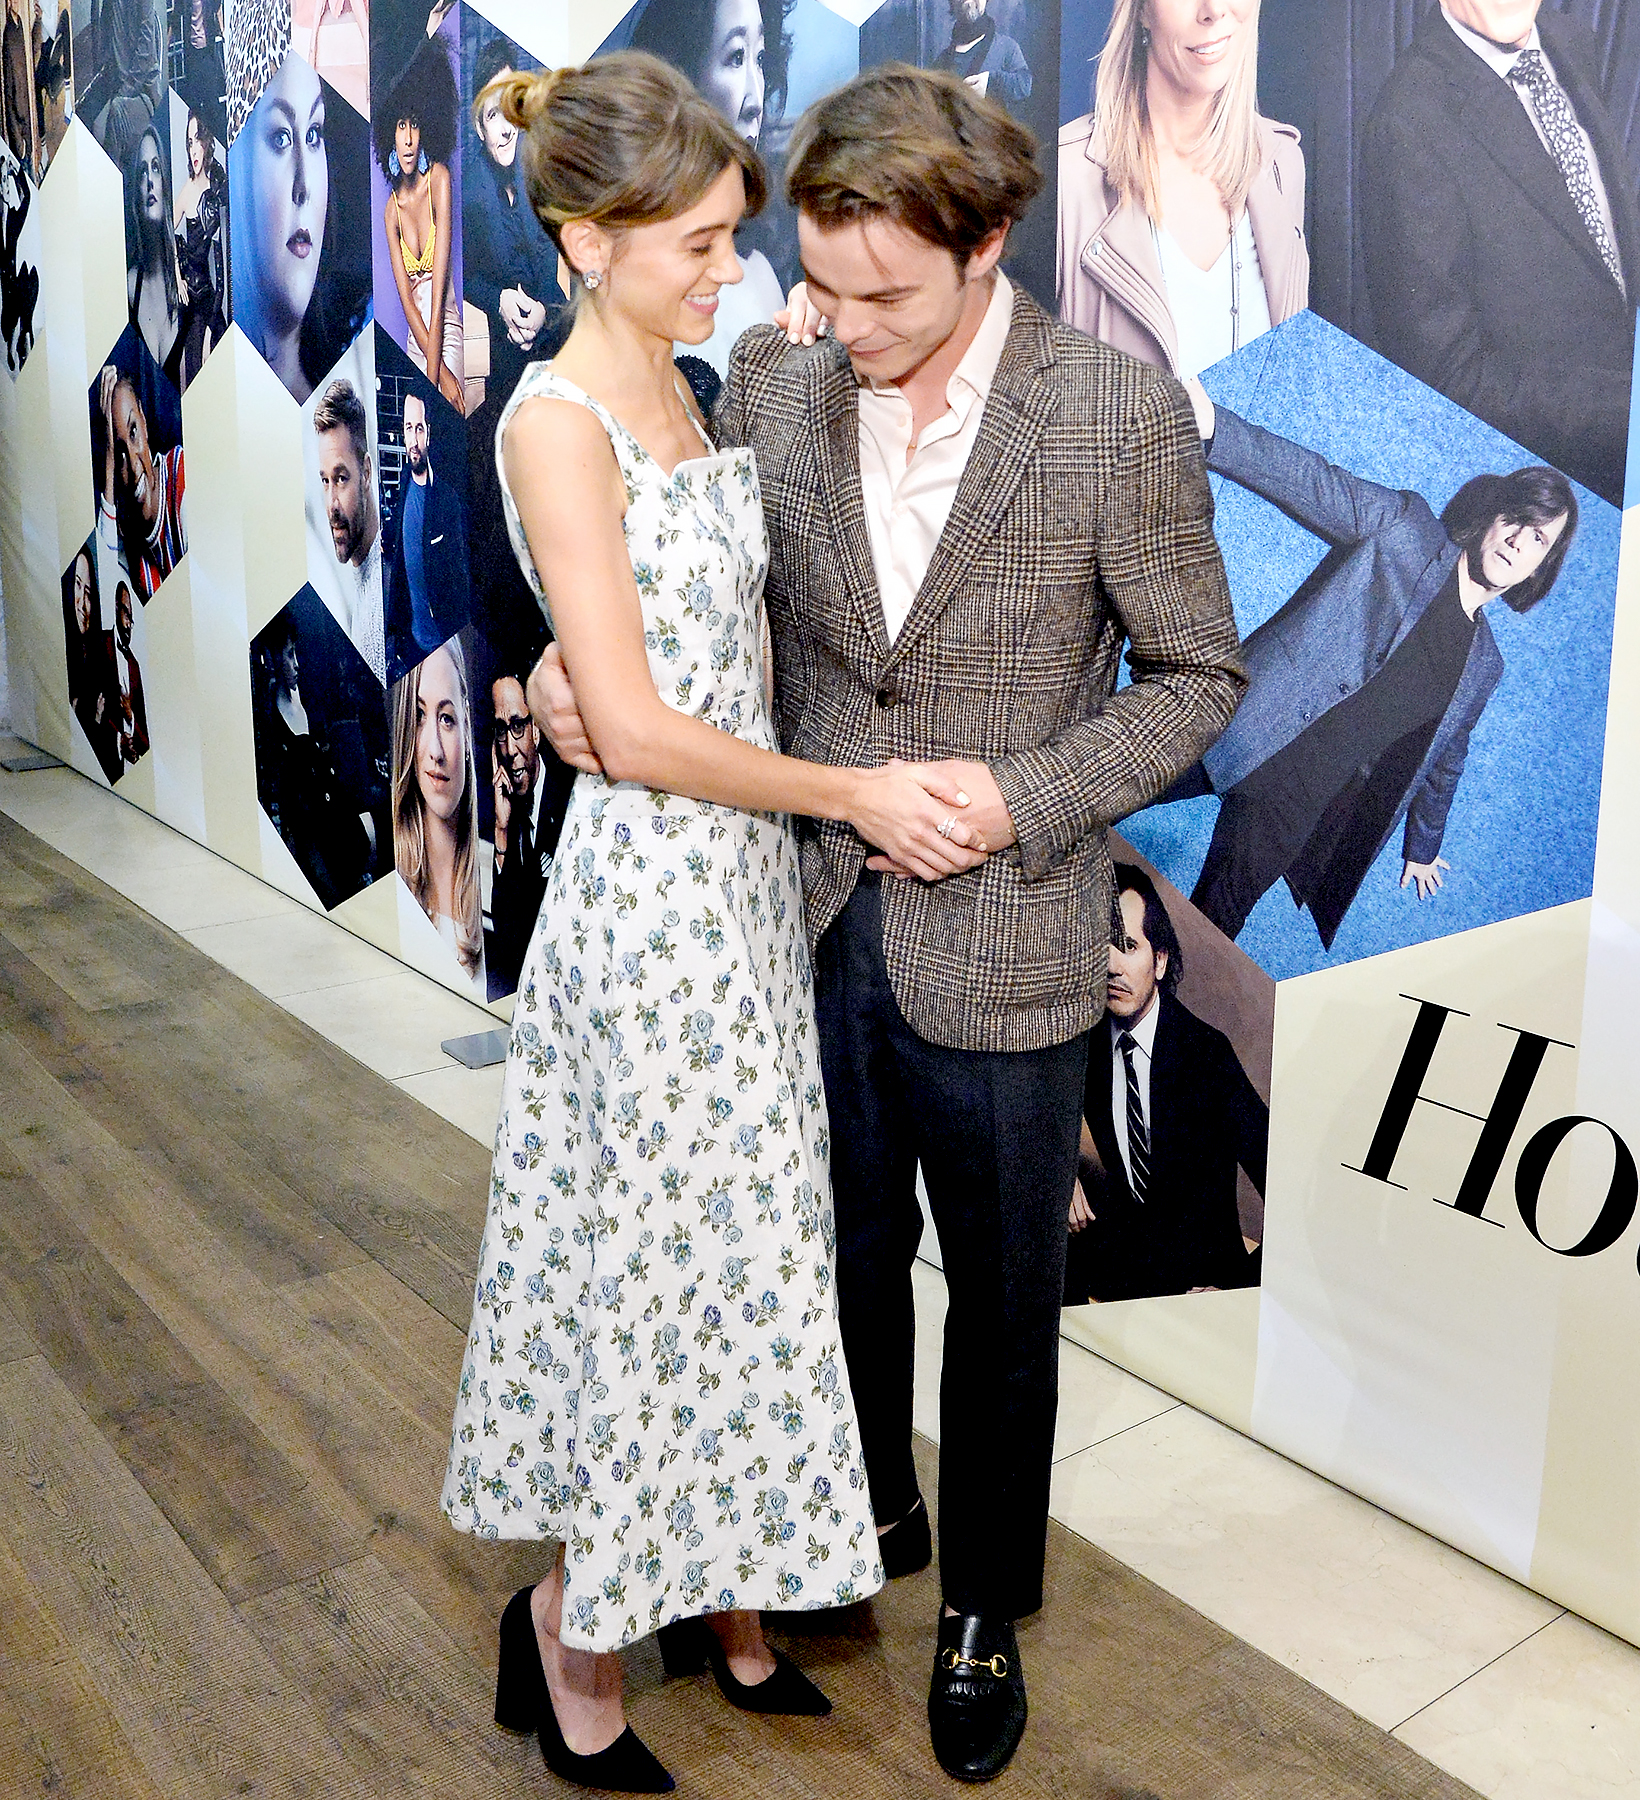 Natalia-Dyer-and-Charlie-Heaton-PDA - Natalia Dyer and Charlie Heaton attend The Hollywood Reporter & SAG-AFTRA 2nd annual Emmy Nominees Night presented by Douglas Elliman and Heineken at Avra Beverly Hills Estiatorio on September 14, 2018 in Beverly Hills, California.